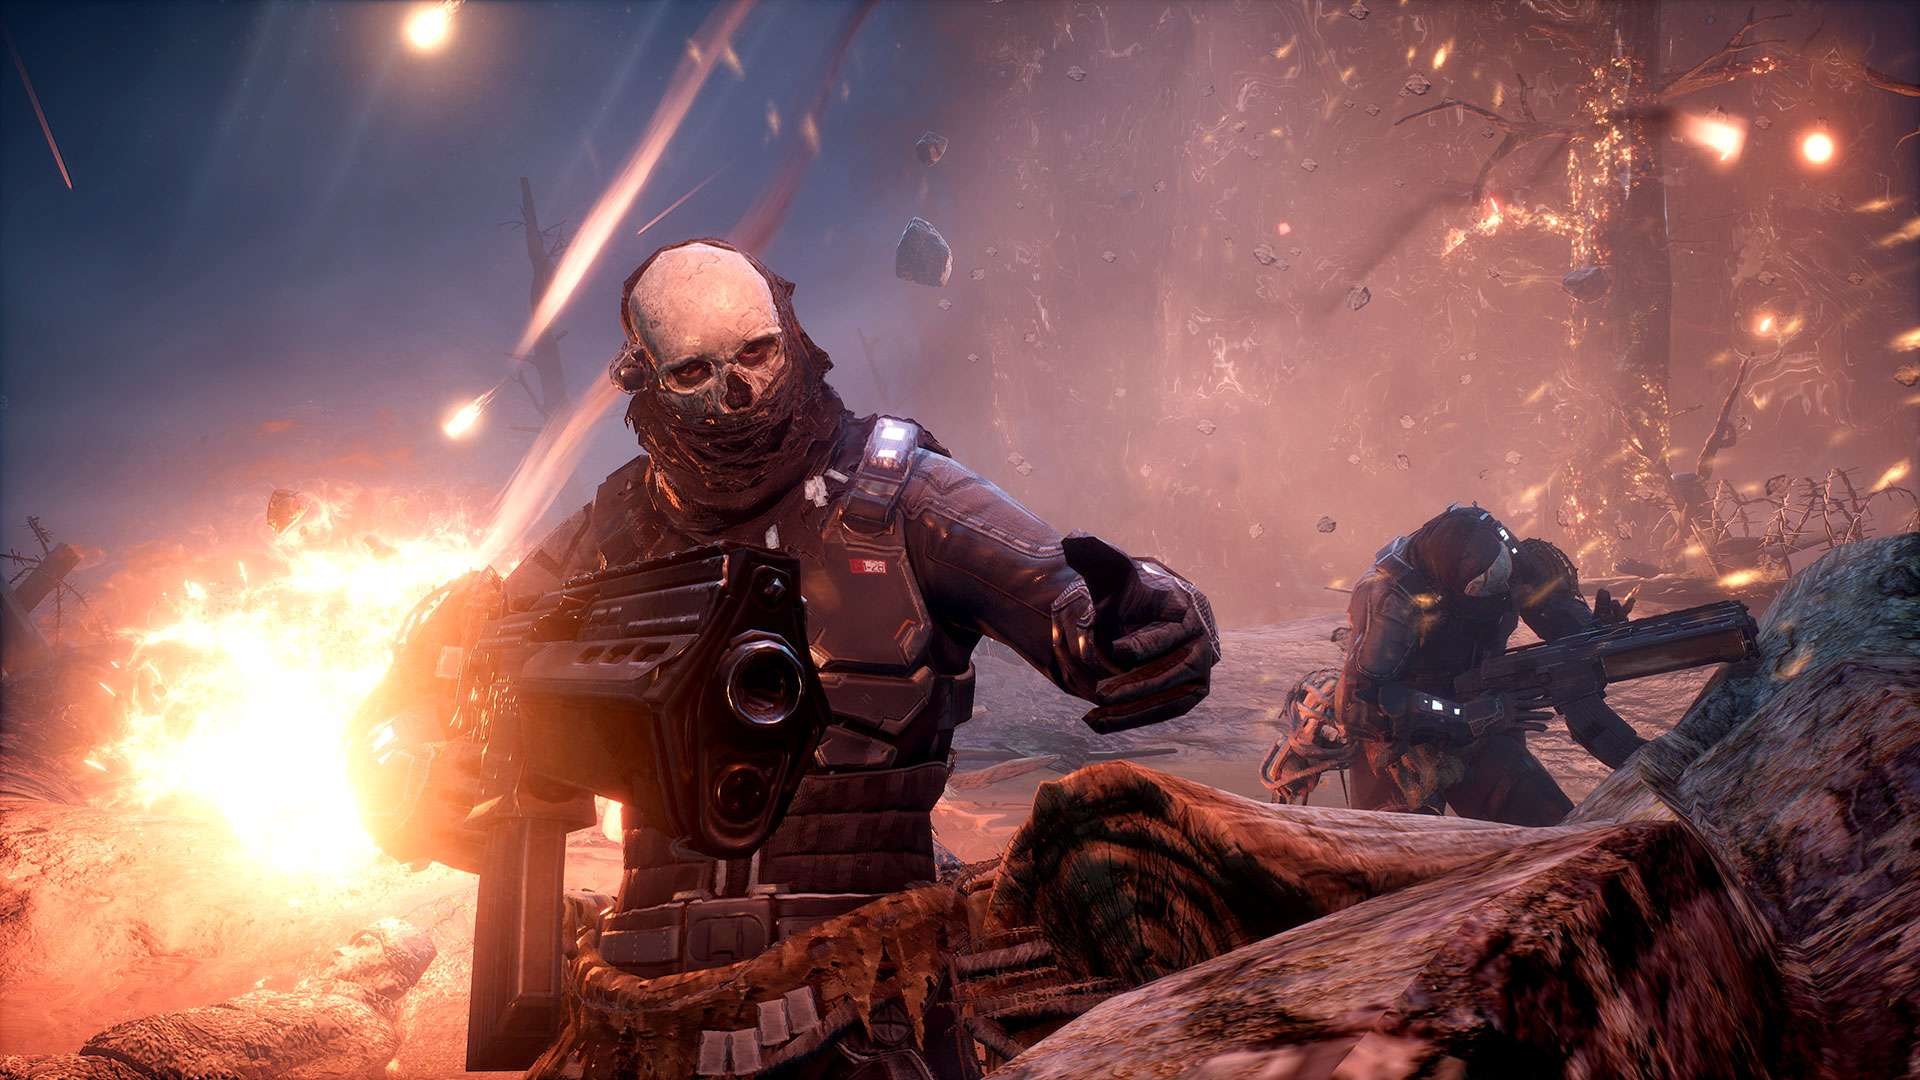 Outriders, the Destiny meets Gears of War shooter, has been pushed back to next year screenshot